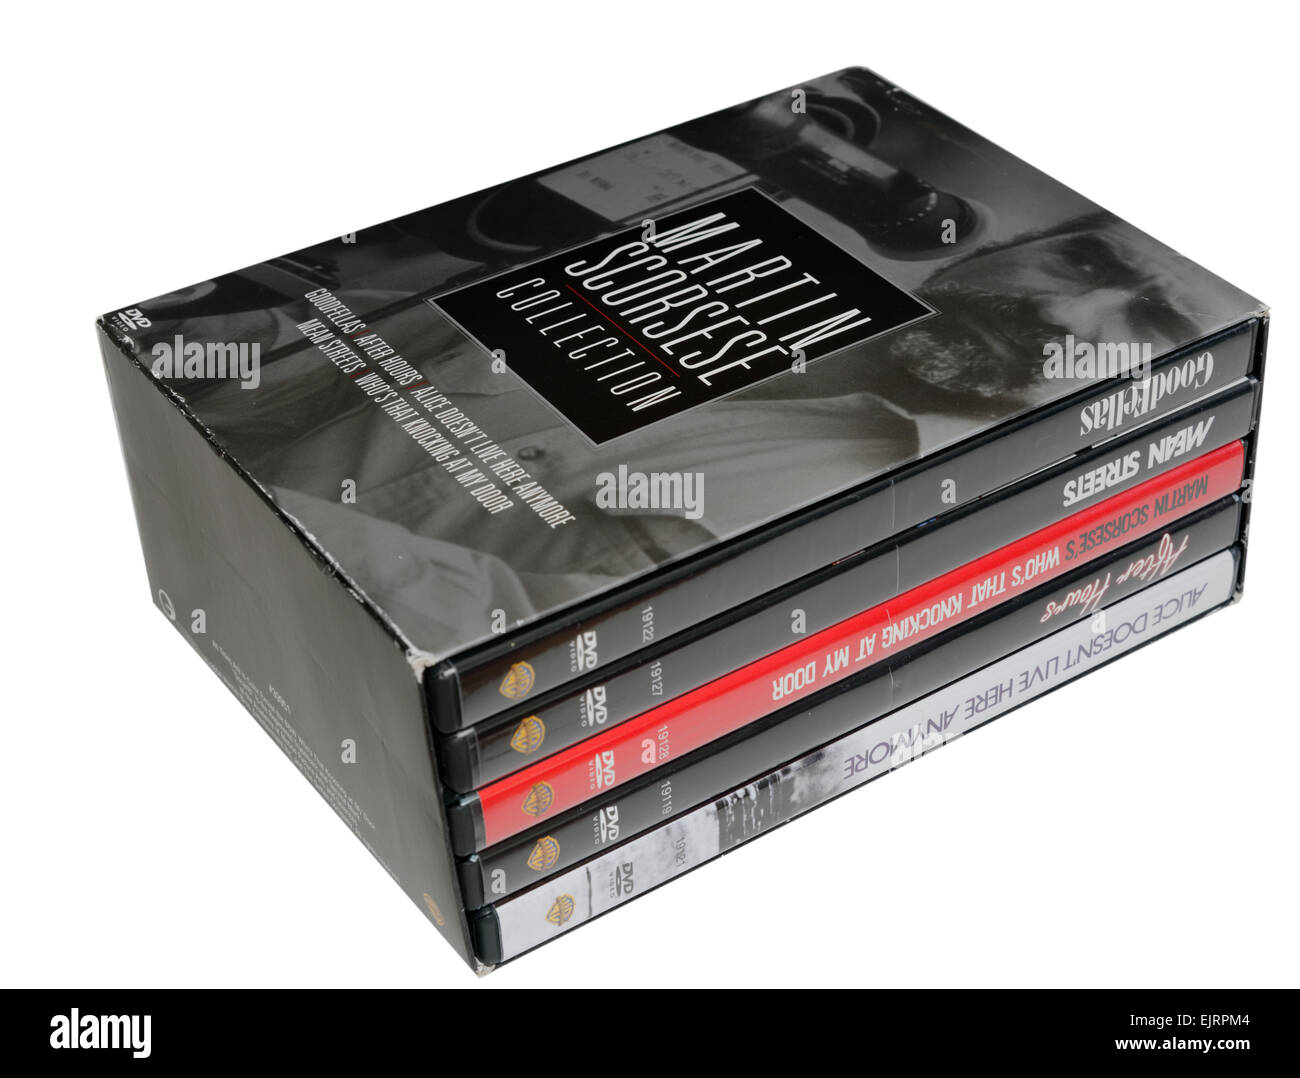 A DVD box set of Martin Scorcese films, including Goodfellas - Stock Image